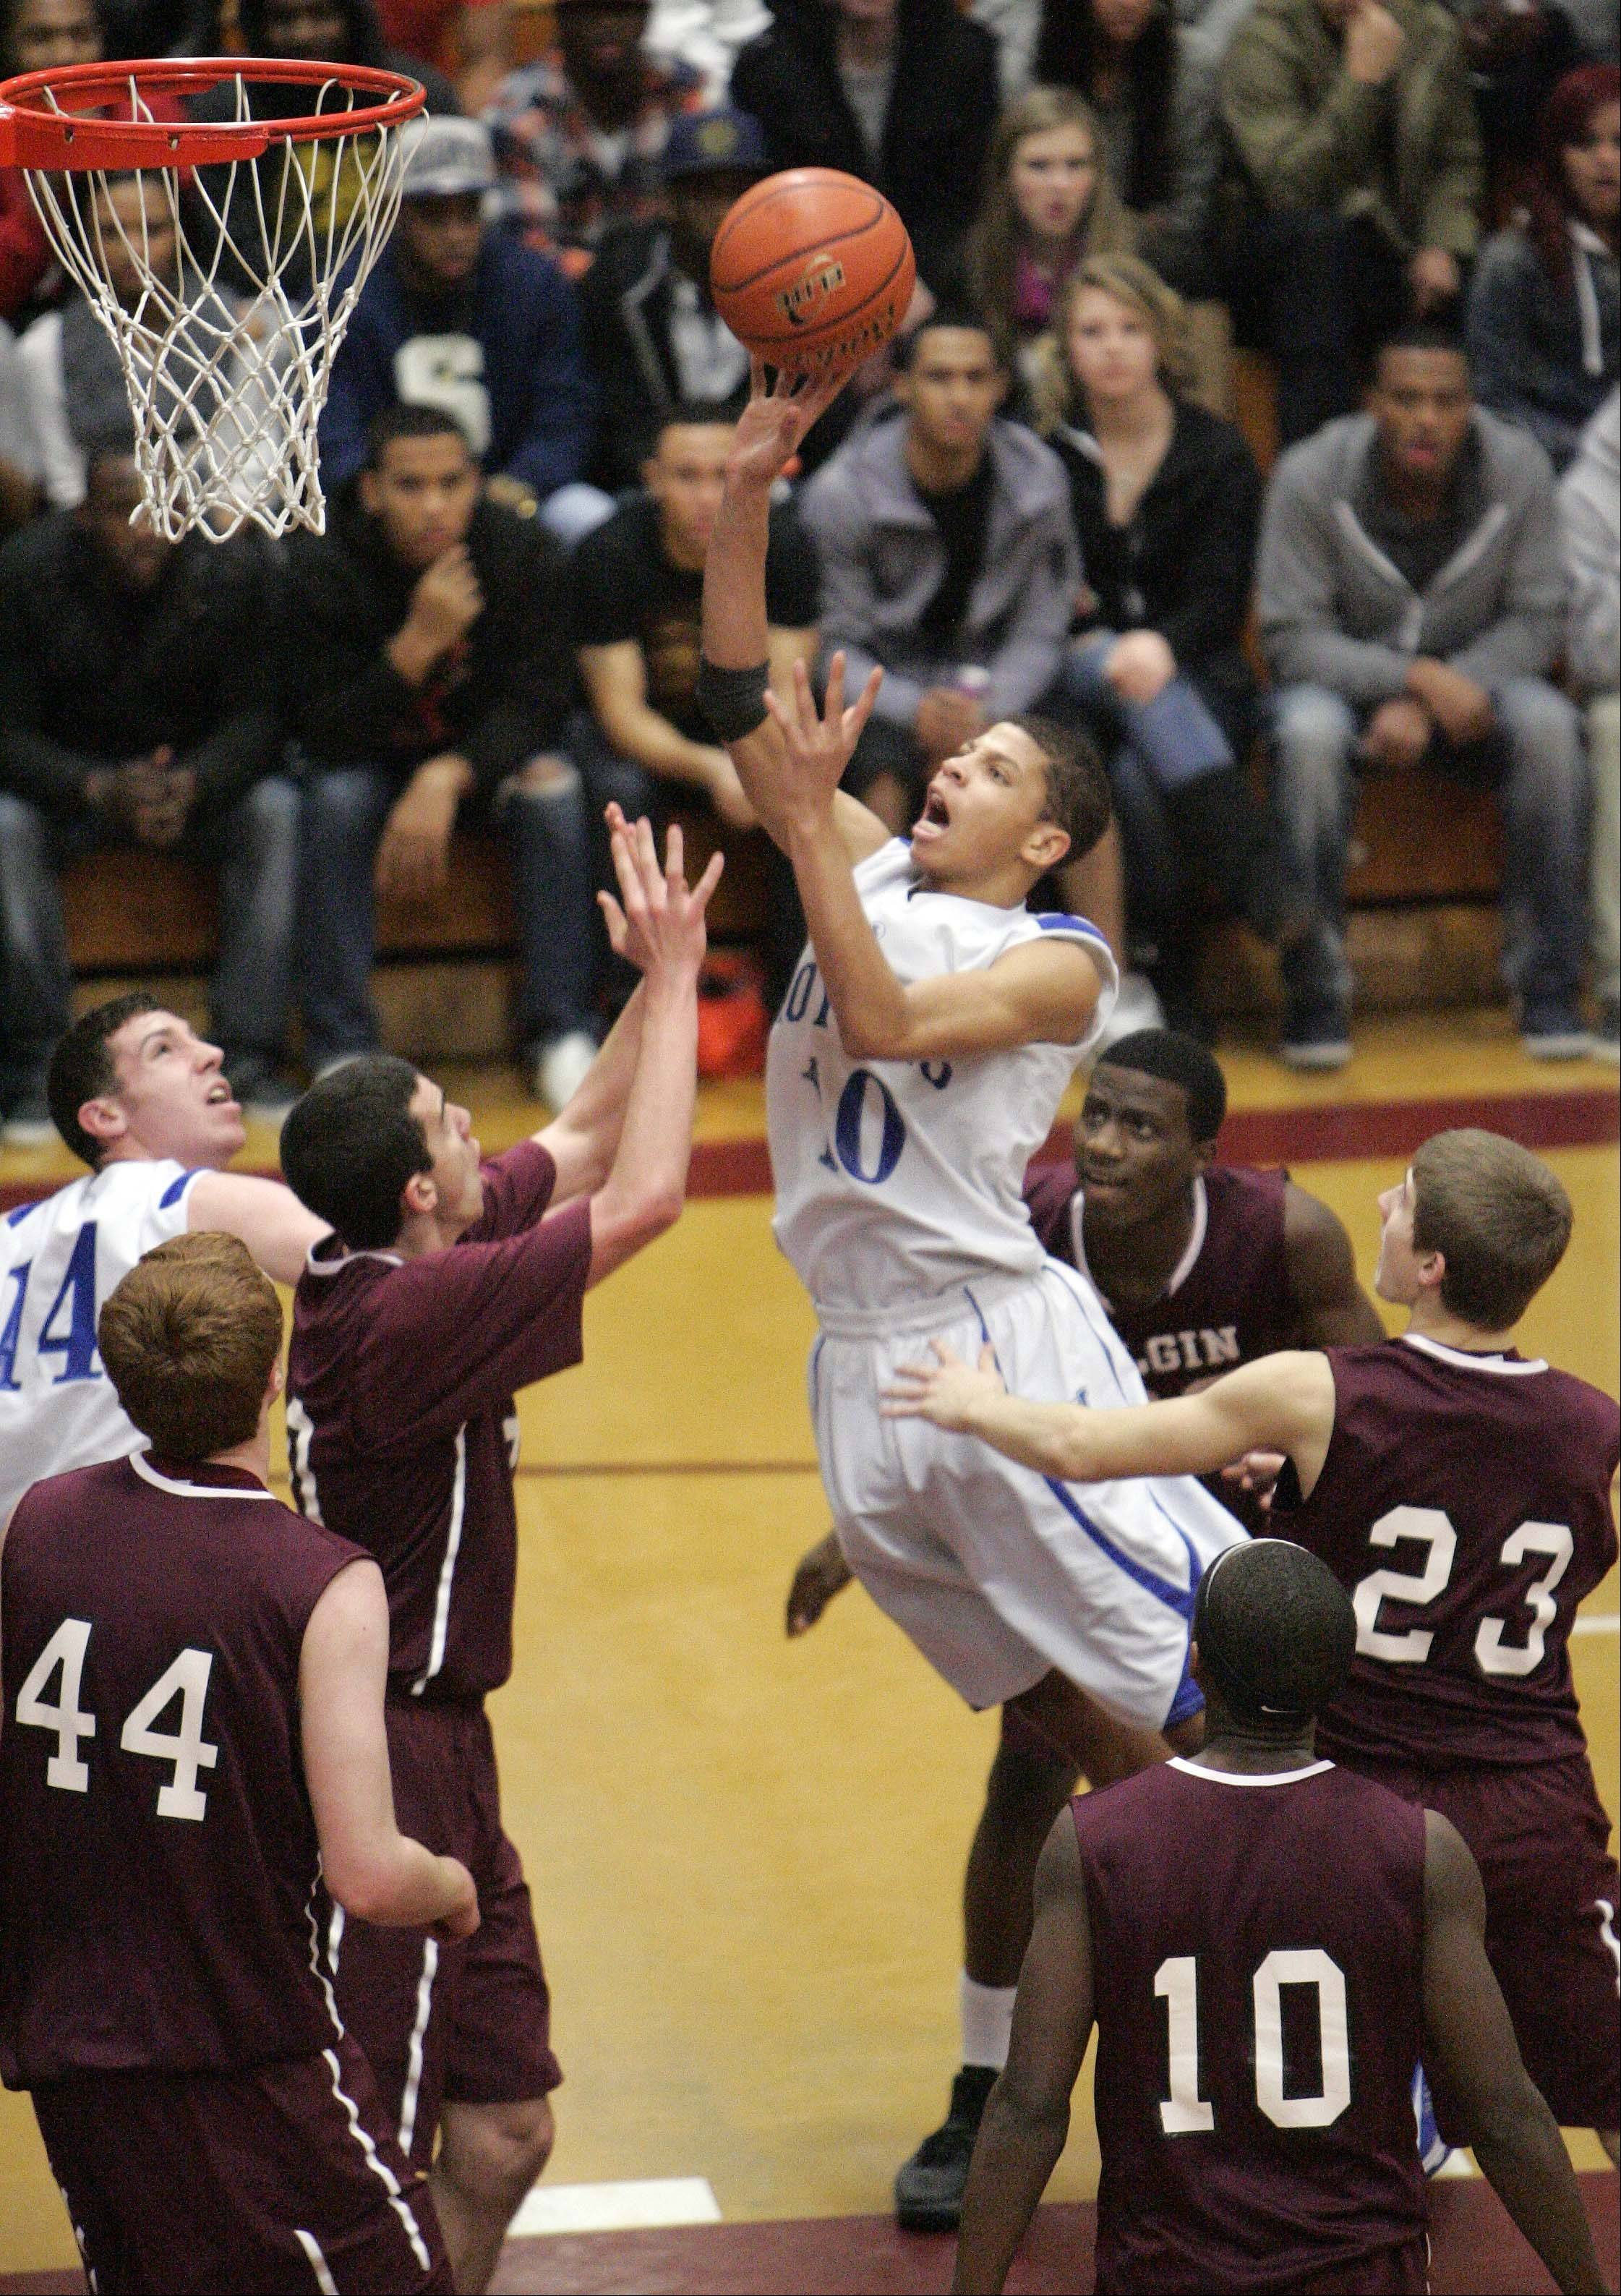 Larkin's Kendale McCullum (10) goes hard to the hoop past a horde of Elgin defenders during the championship game of Elgin's holiday tournament on Saturday. Larkin looks like the team to beat in the UEC River, while Elgin and standout guard Arie Williams have surprised while delivering a 9-7 record so far.